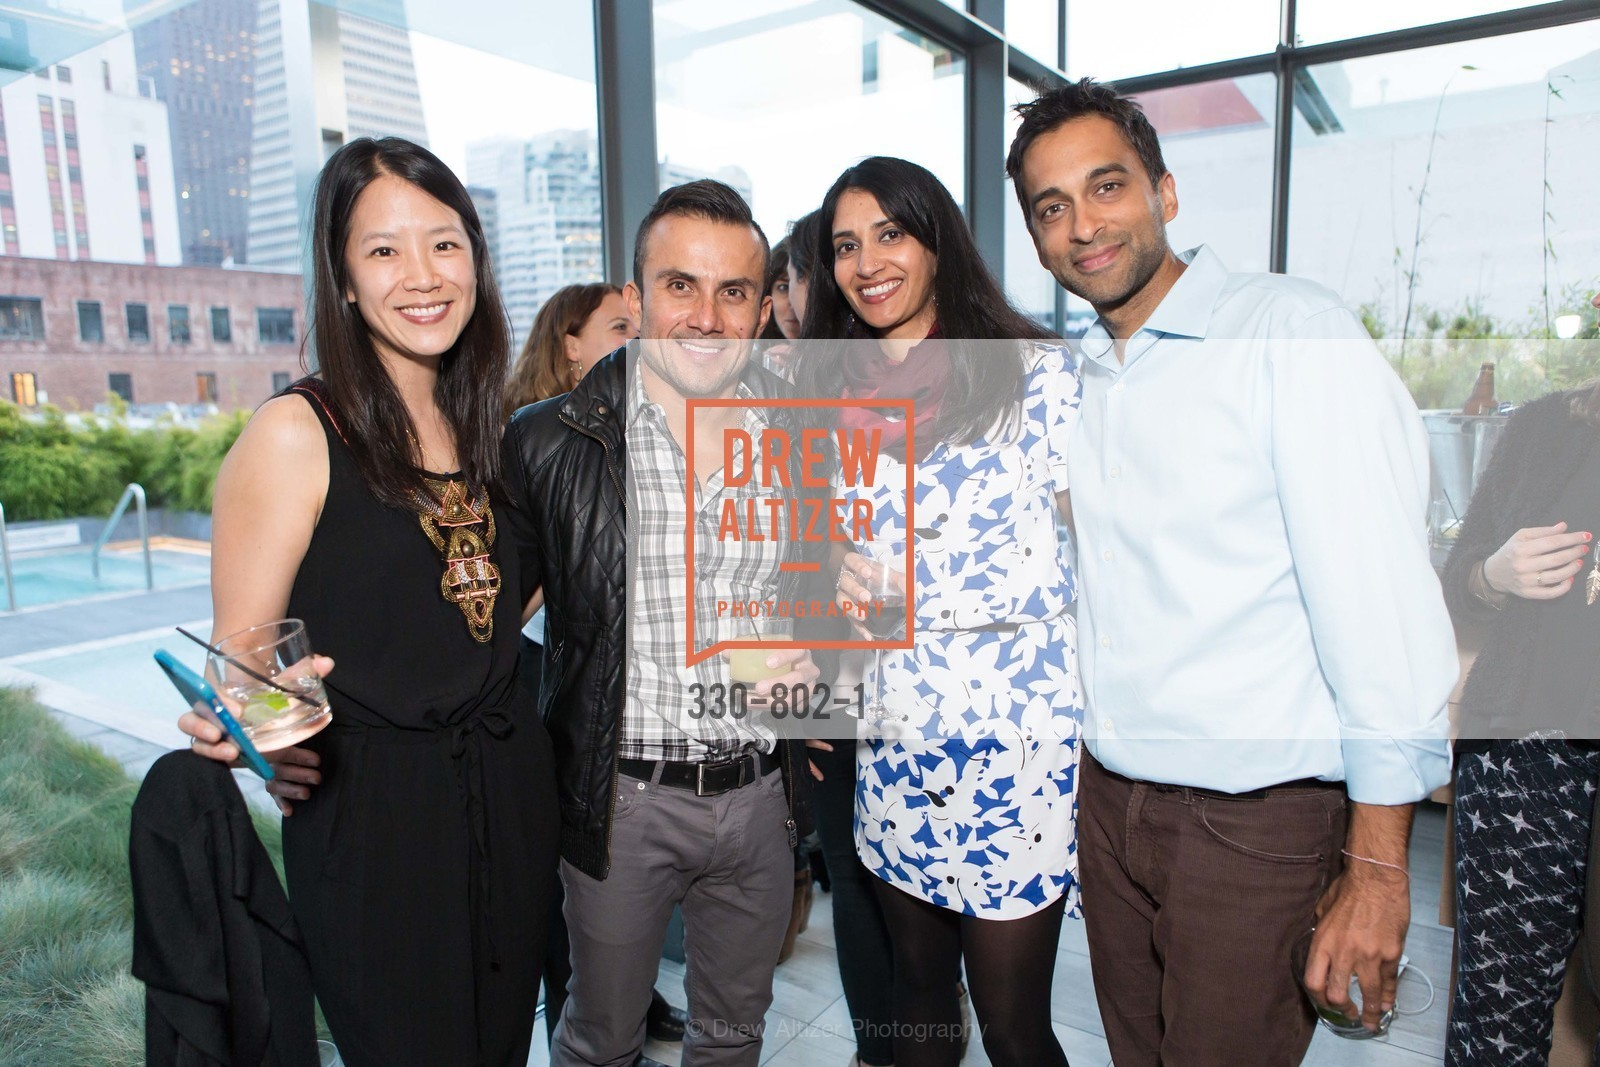 MingMing Kwan, Carlos Bermudez, Sapna Meister, Huns Mith, MR PORTER Celebrate The San Francisco Issue of The Journal, US, April 24th, 2015,Drew Altizer, Drew Altizer Photography, full-service agency, private events, San Francisco photographer, photographer california